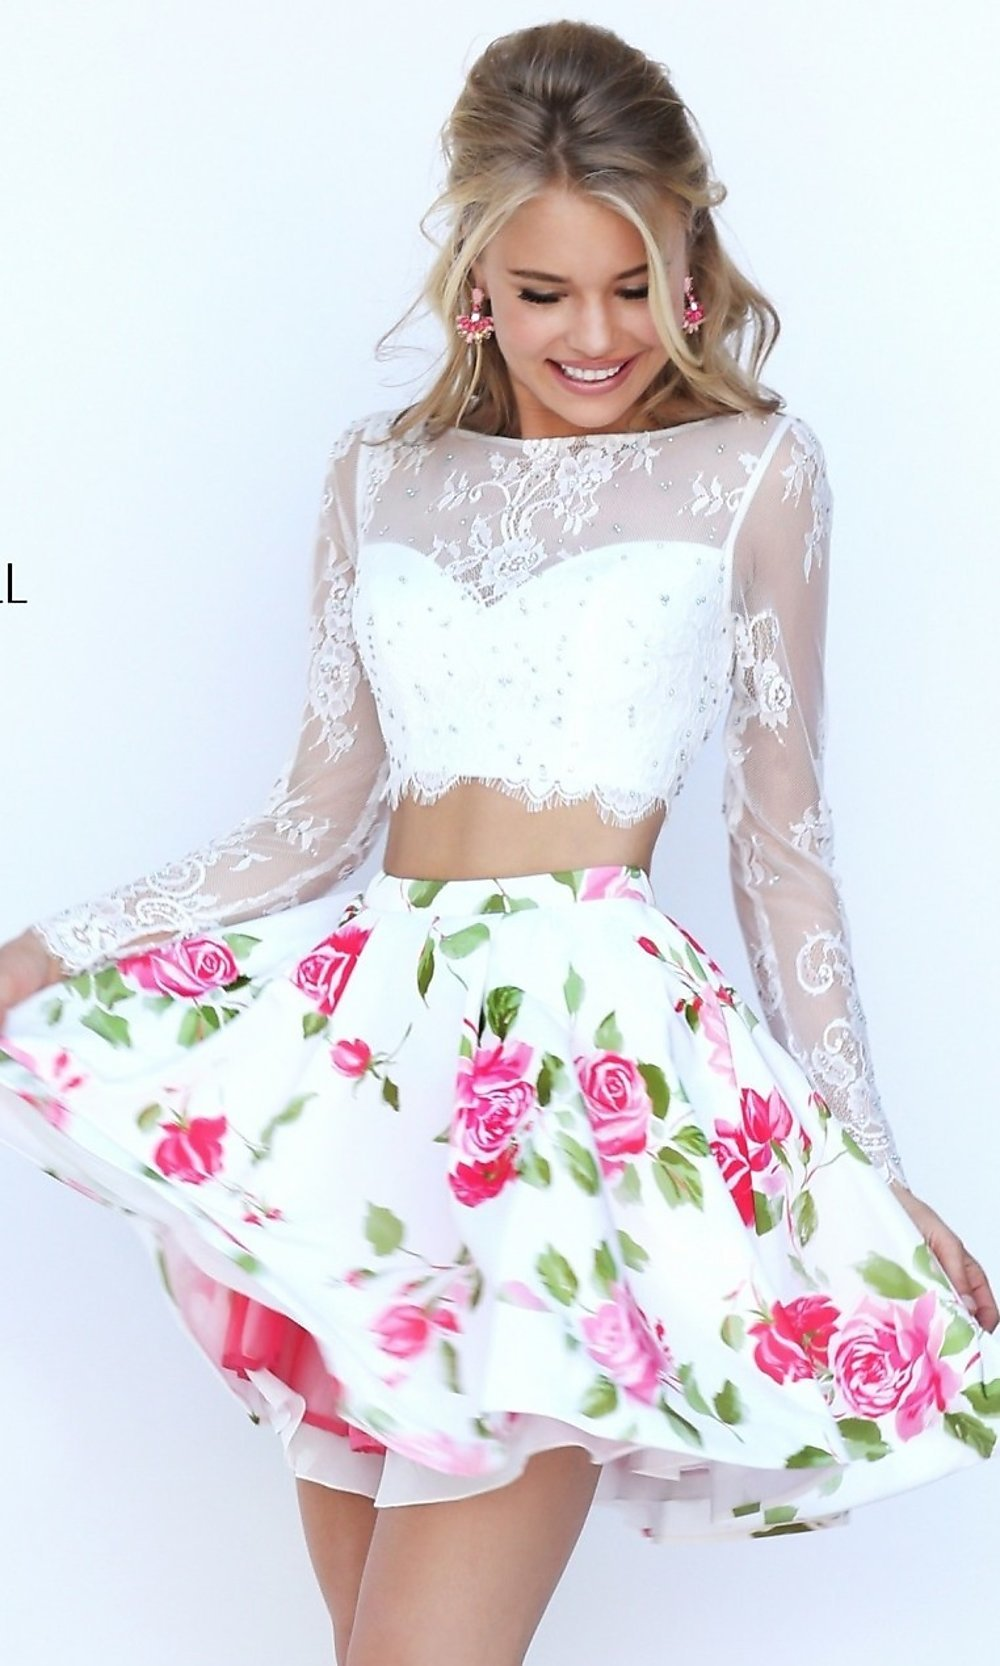 Long-Sleeve Lace Top Two-Piece Dress - PromGirl